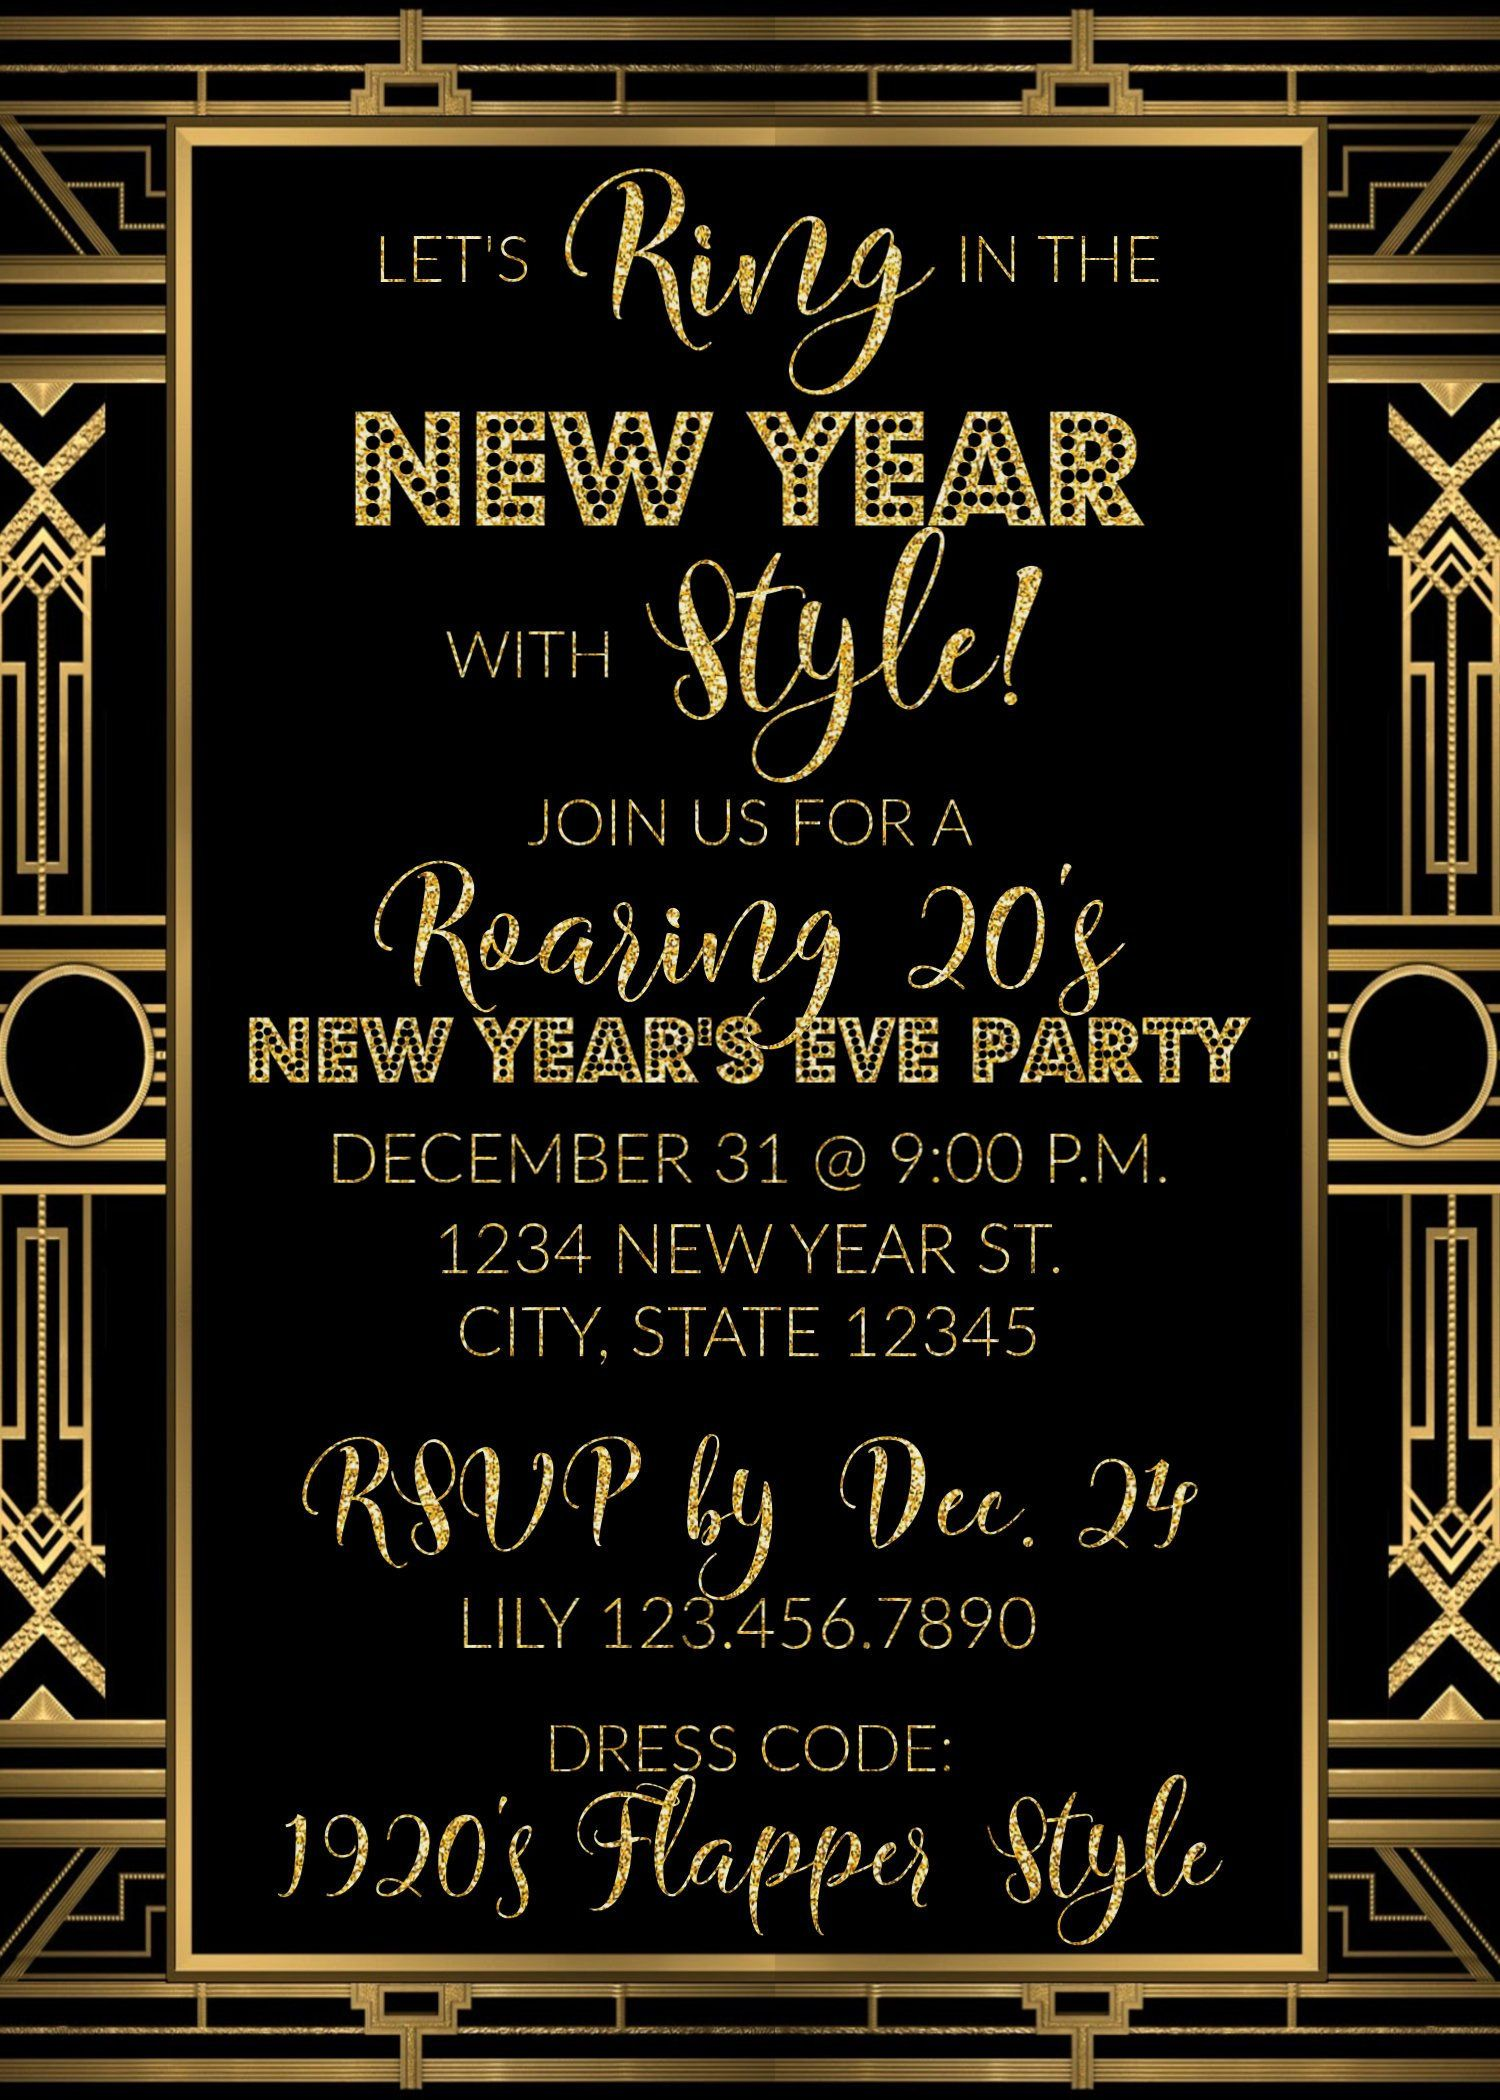 Roaring 20s New Years Eve Party Invitation Ring In The New Etsy New Year S Eve Party Themes New Years Eve Invitations 20s Party Invitation